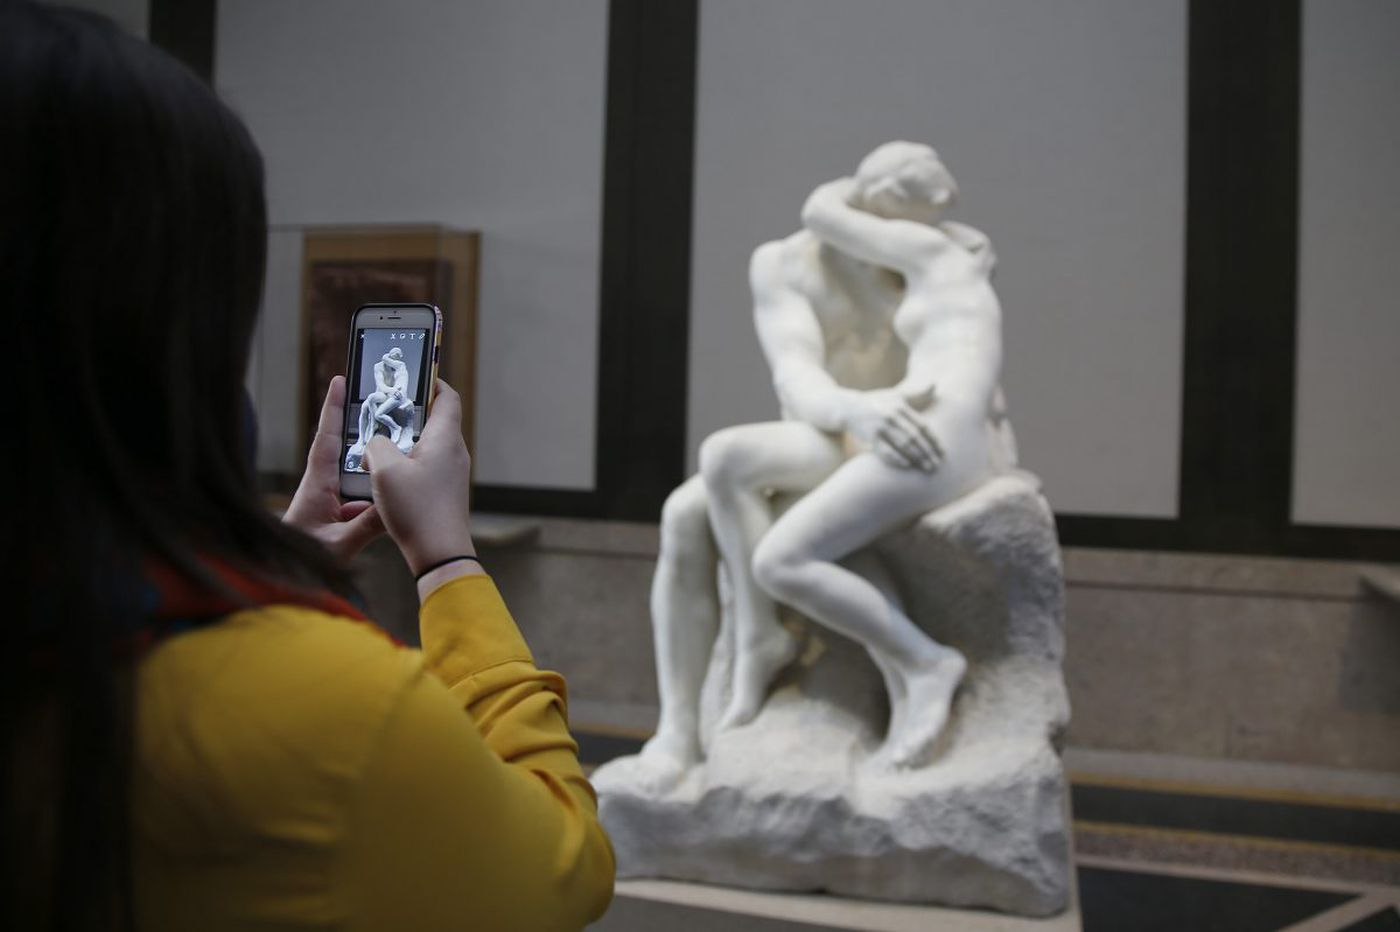 Philadelphia Museum of Art commemorates Rodin death centennial (and shows off that bust that turned up in N.J. town hall)